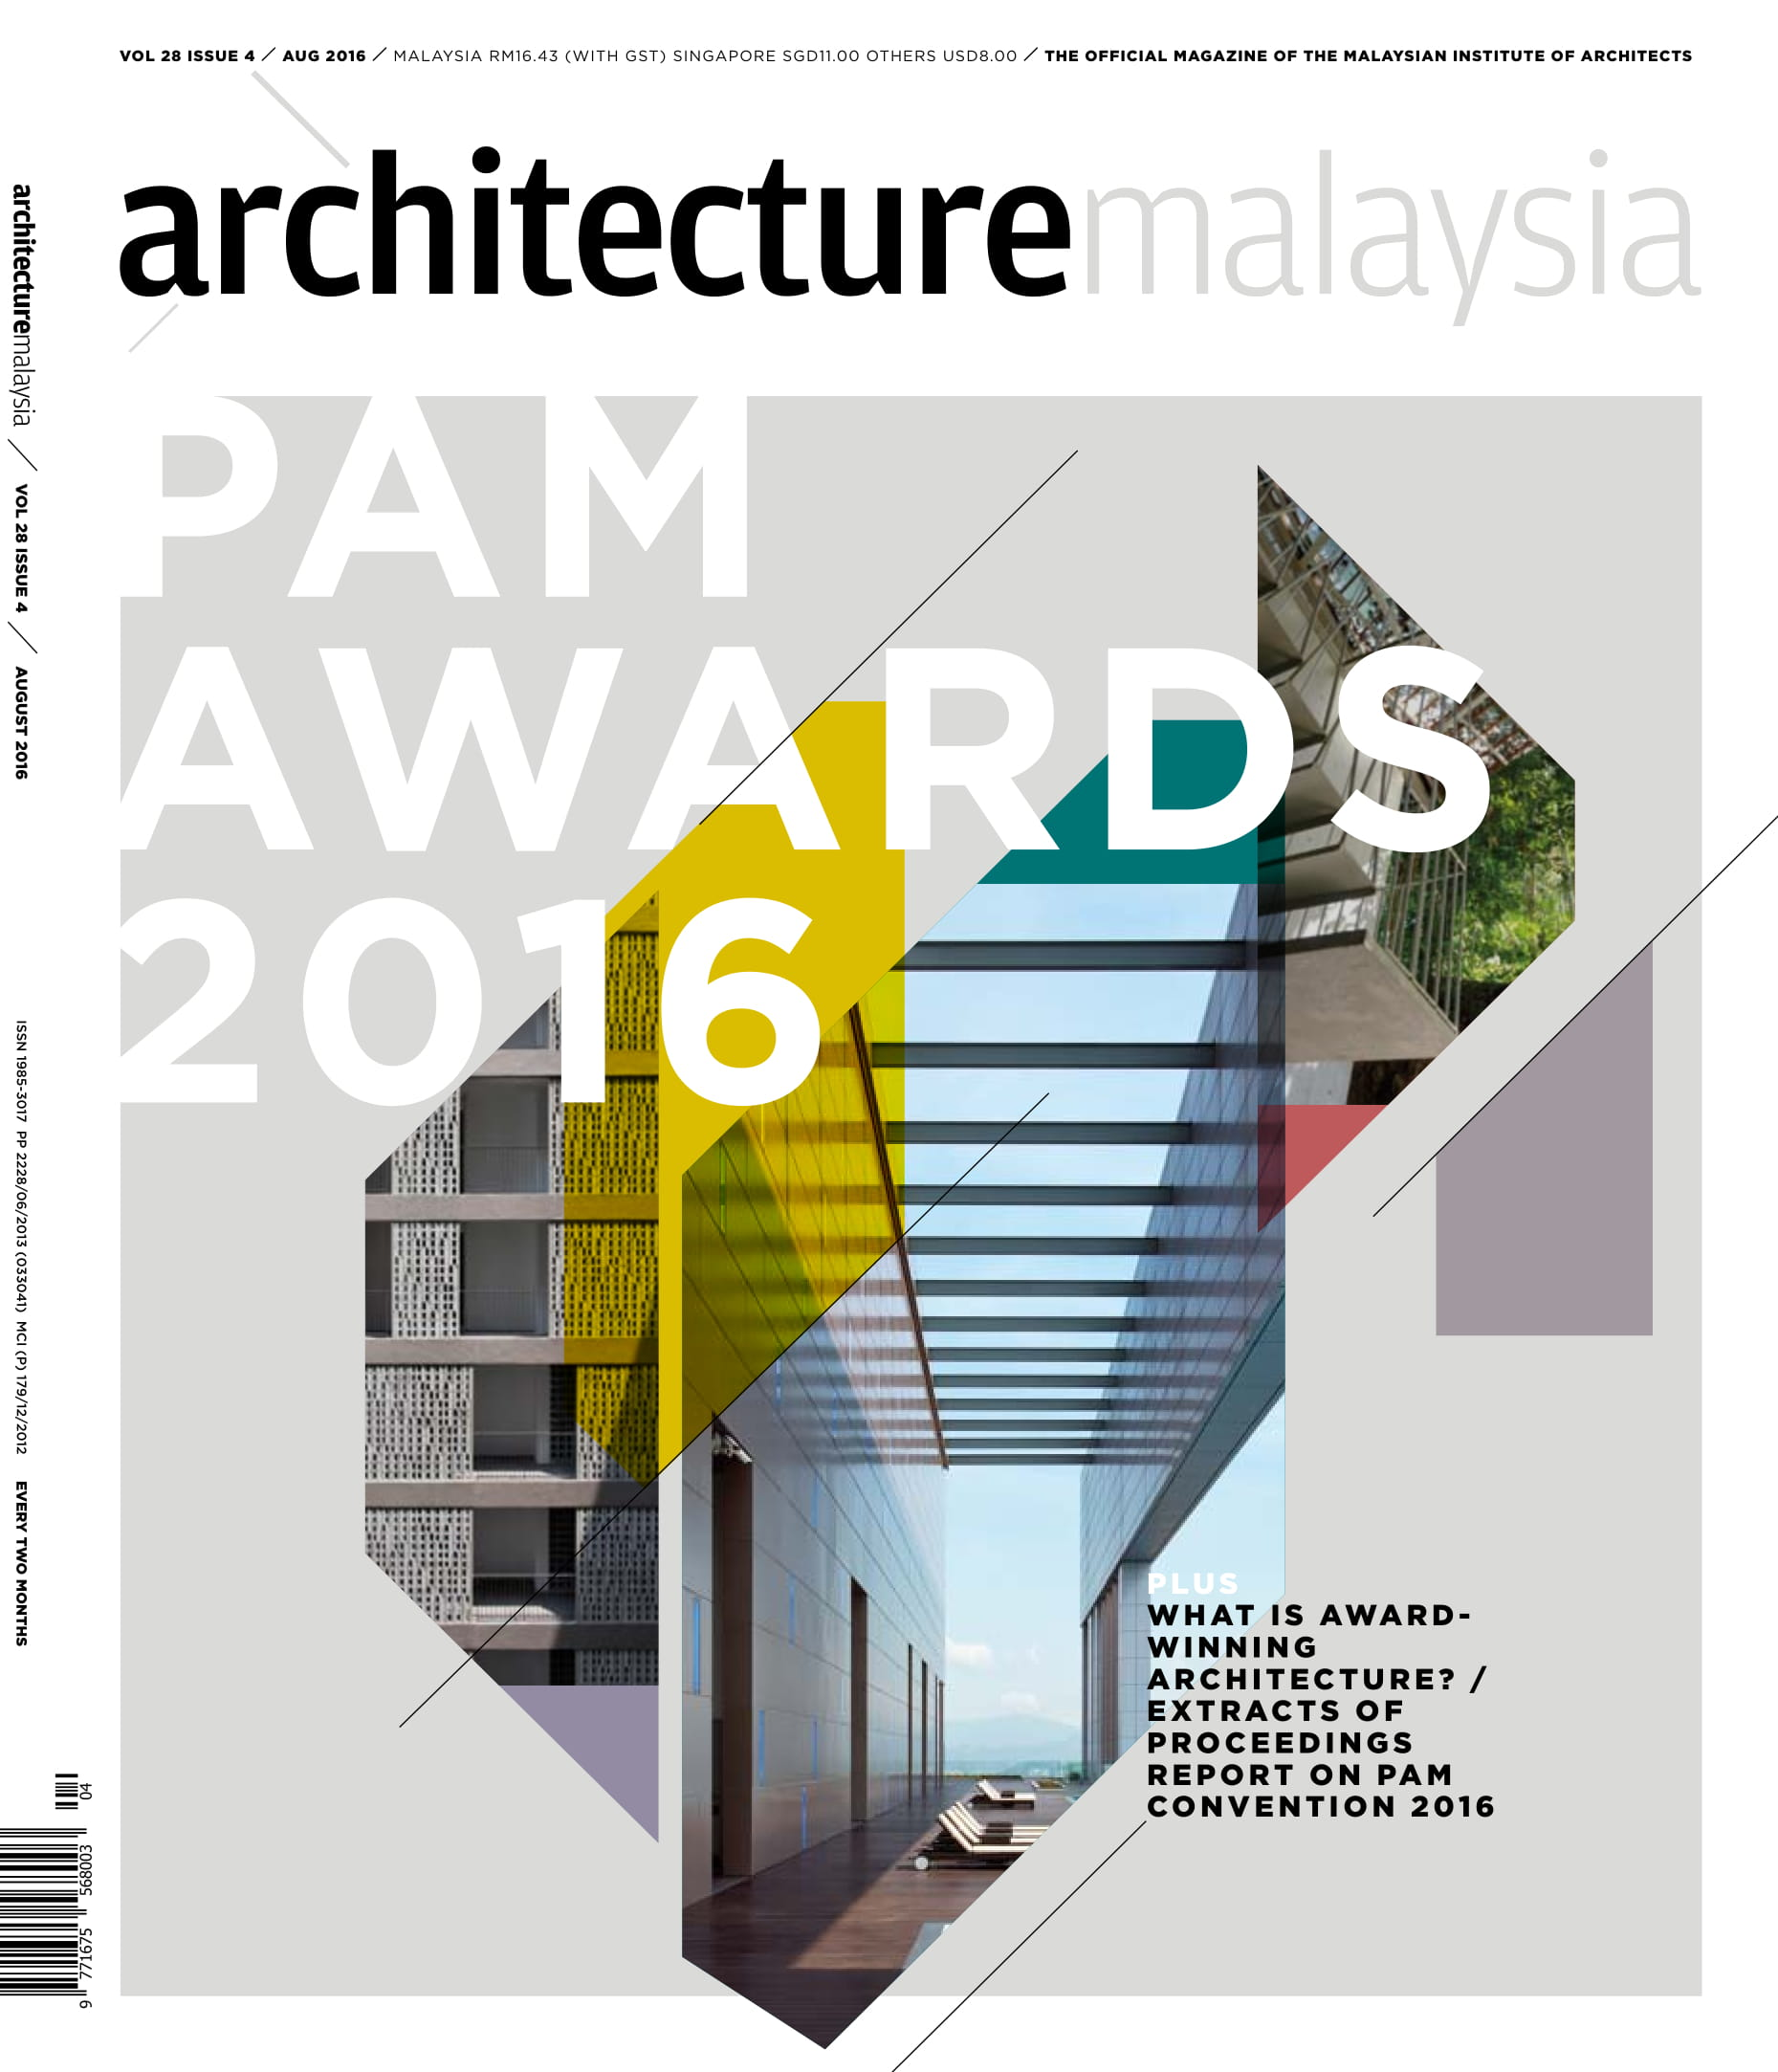 AM Issue 28.4